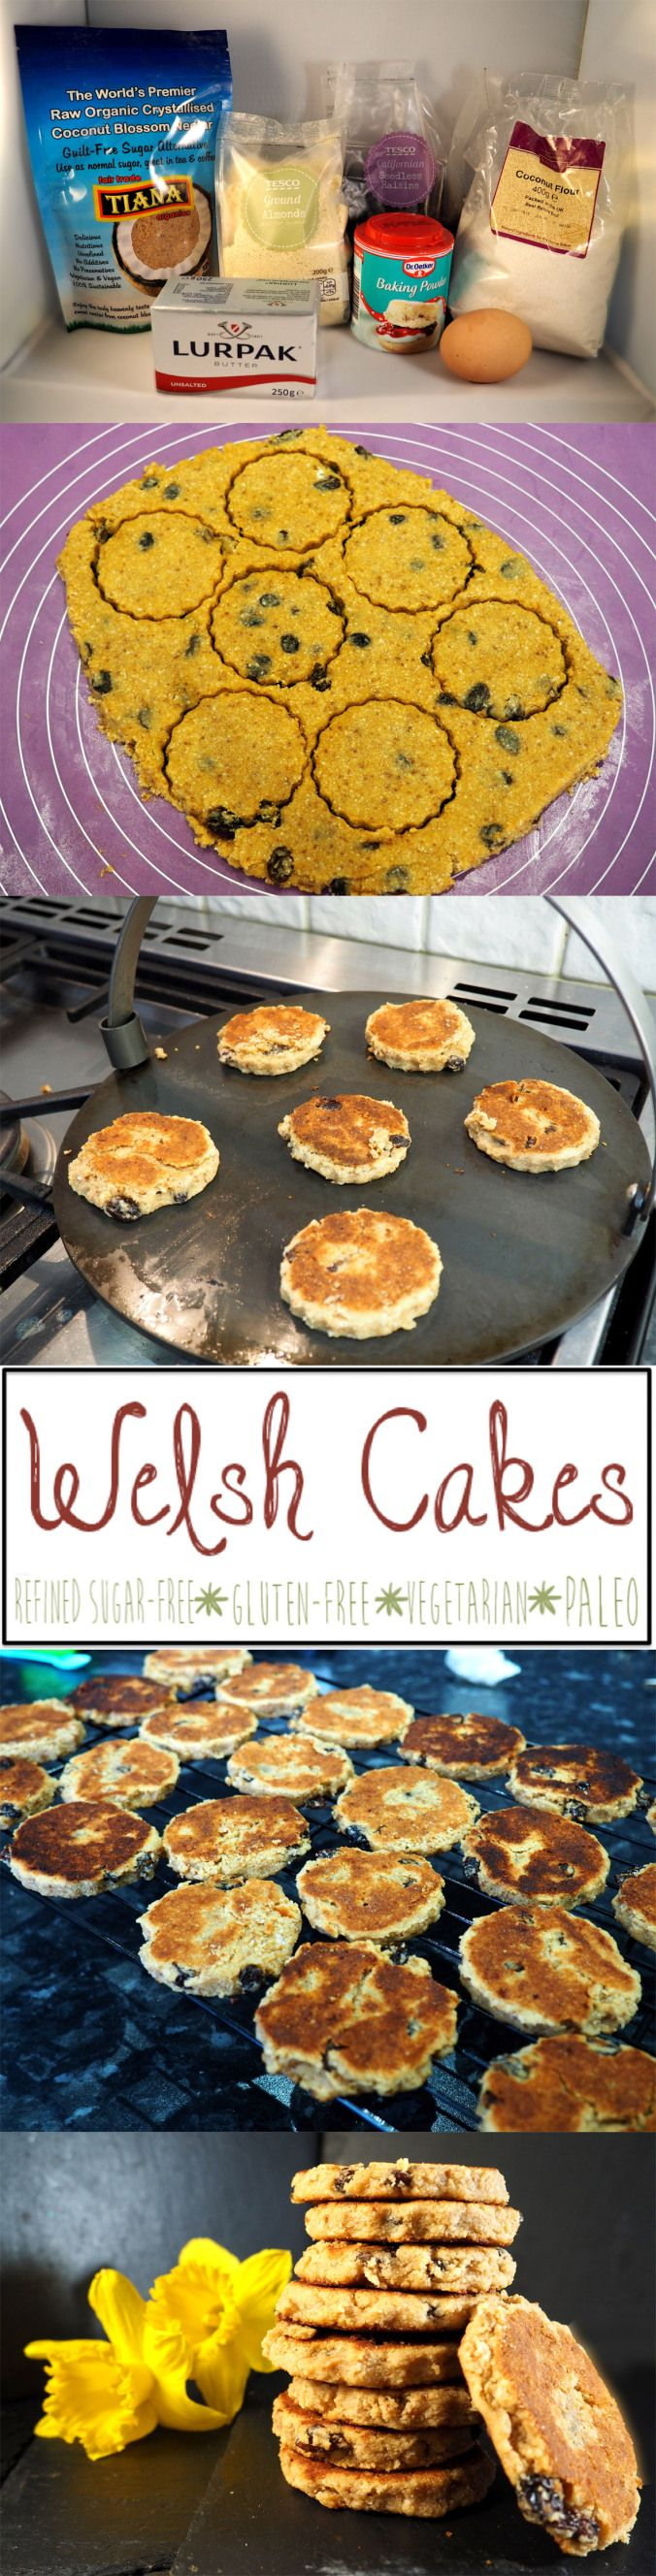 Welsh Cakes (Pice ar y Maen)! Traditional and delicious welsh cakes. Paleo, refined sugar-free, gluten-free, vegetarian and grain-free! Happy St Davids Day!